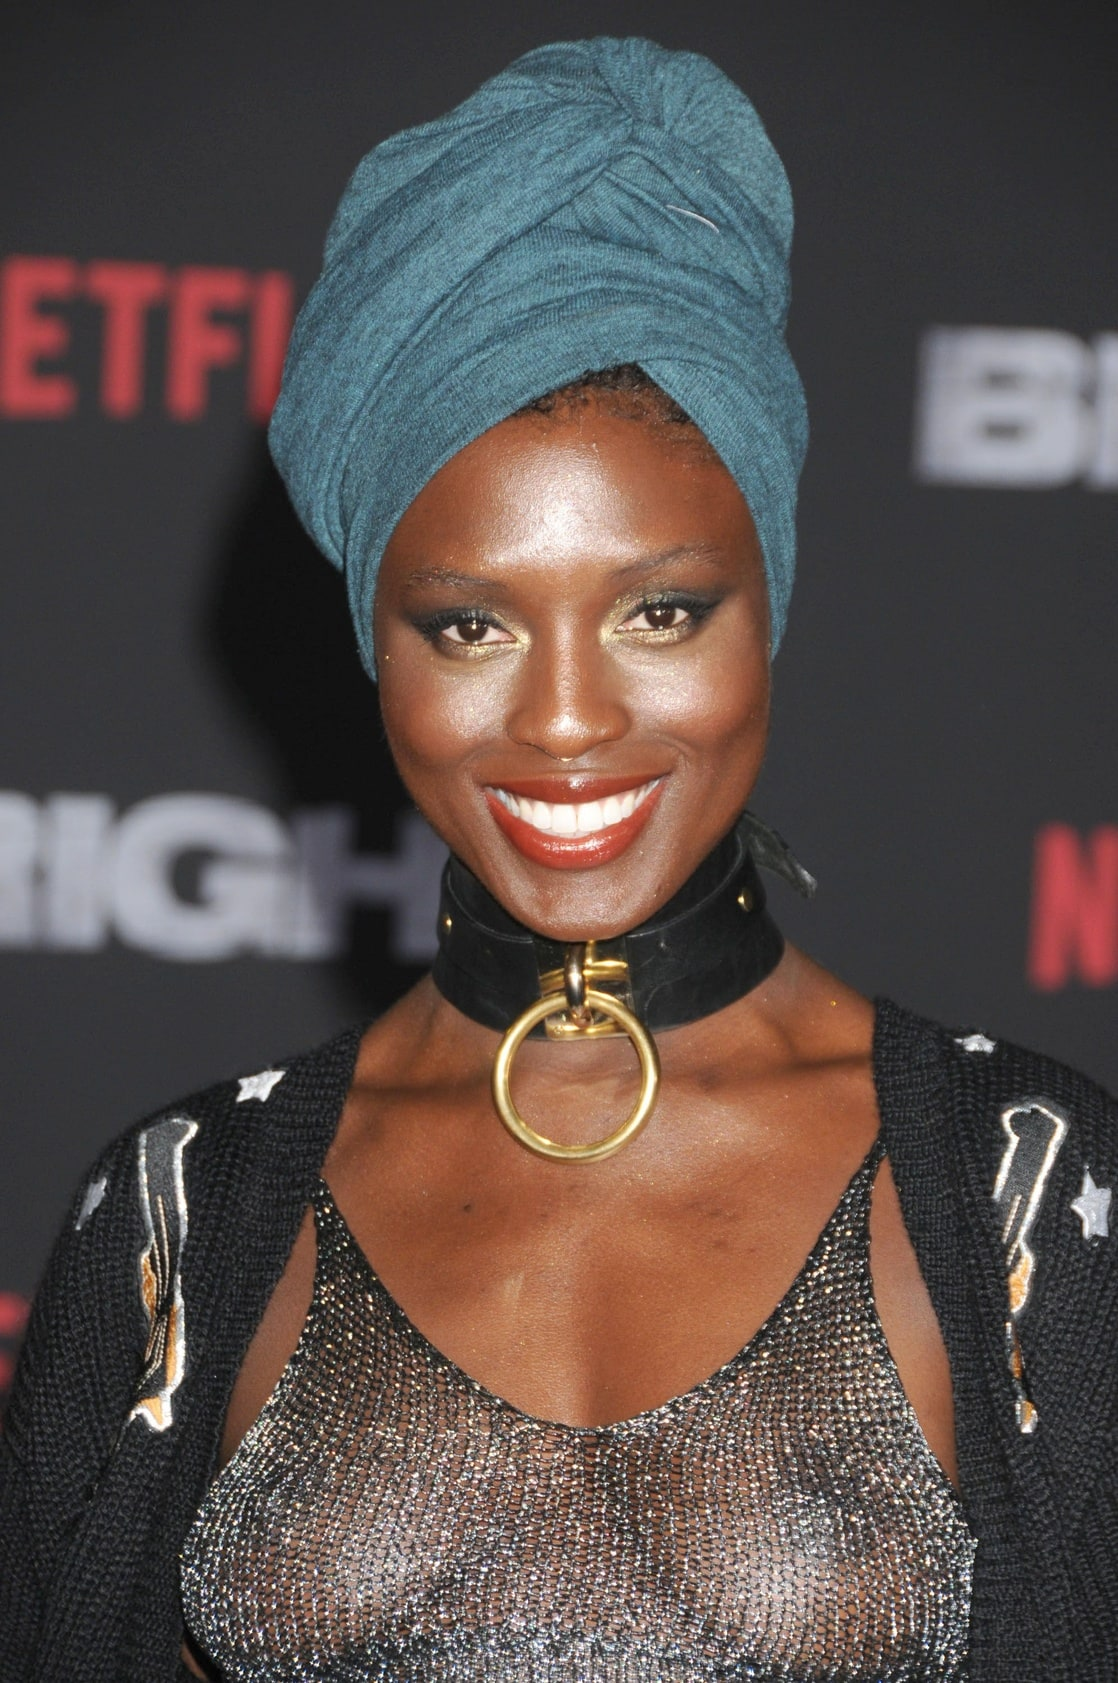 ICloud Jodie Turner-Smith naked (46 photos), Topless, Cleavage, Boobs, cameltoe 2019